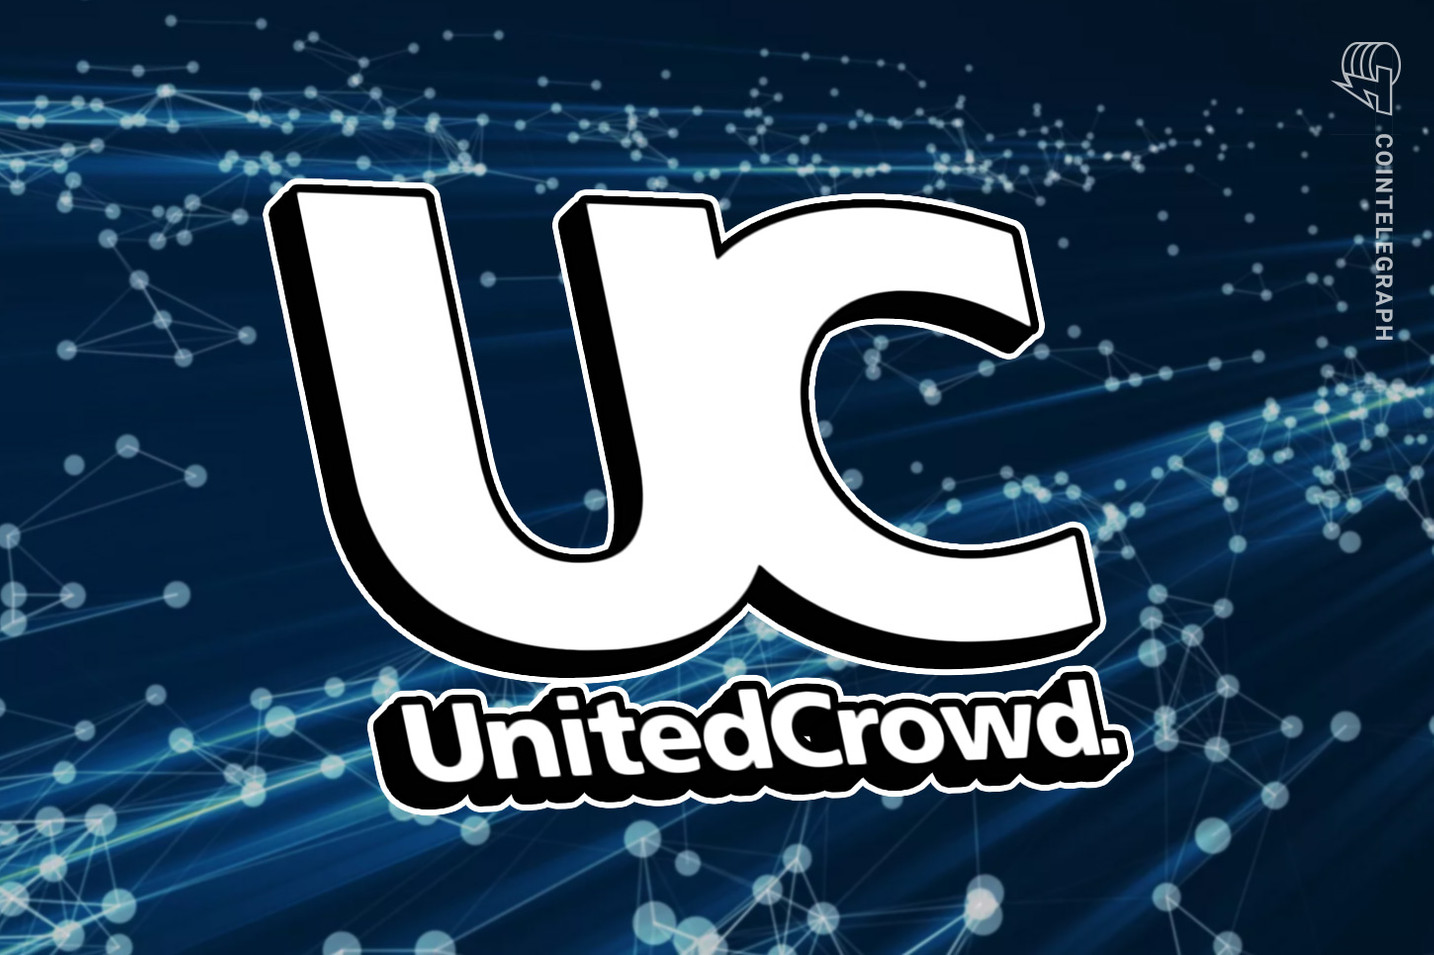 UnitedCrowd announces the listing of UCT on Bitcoin.com